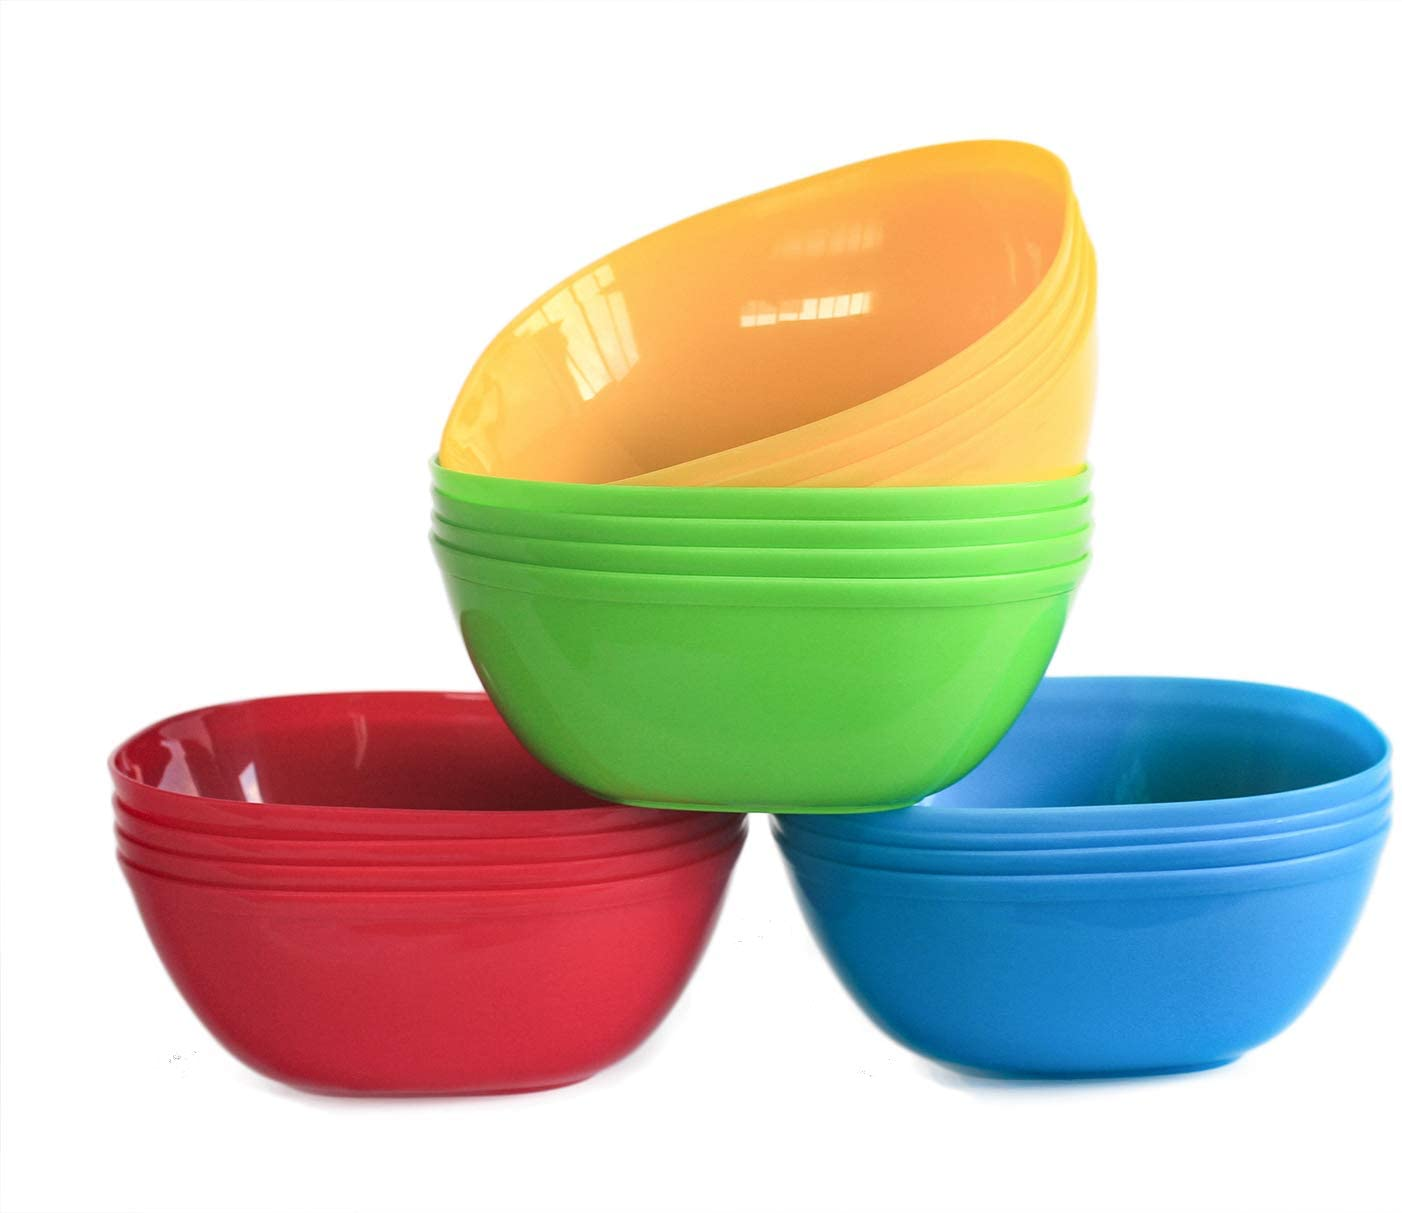 Honla 22oz Plastic Bowls,Set of 16 Unbreakable Cereal Bowls in 4 Assorted Colors